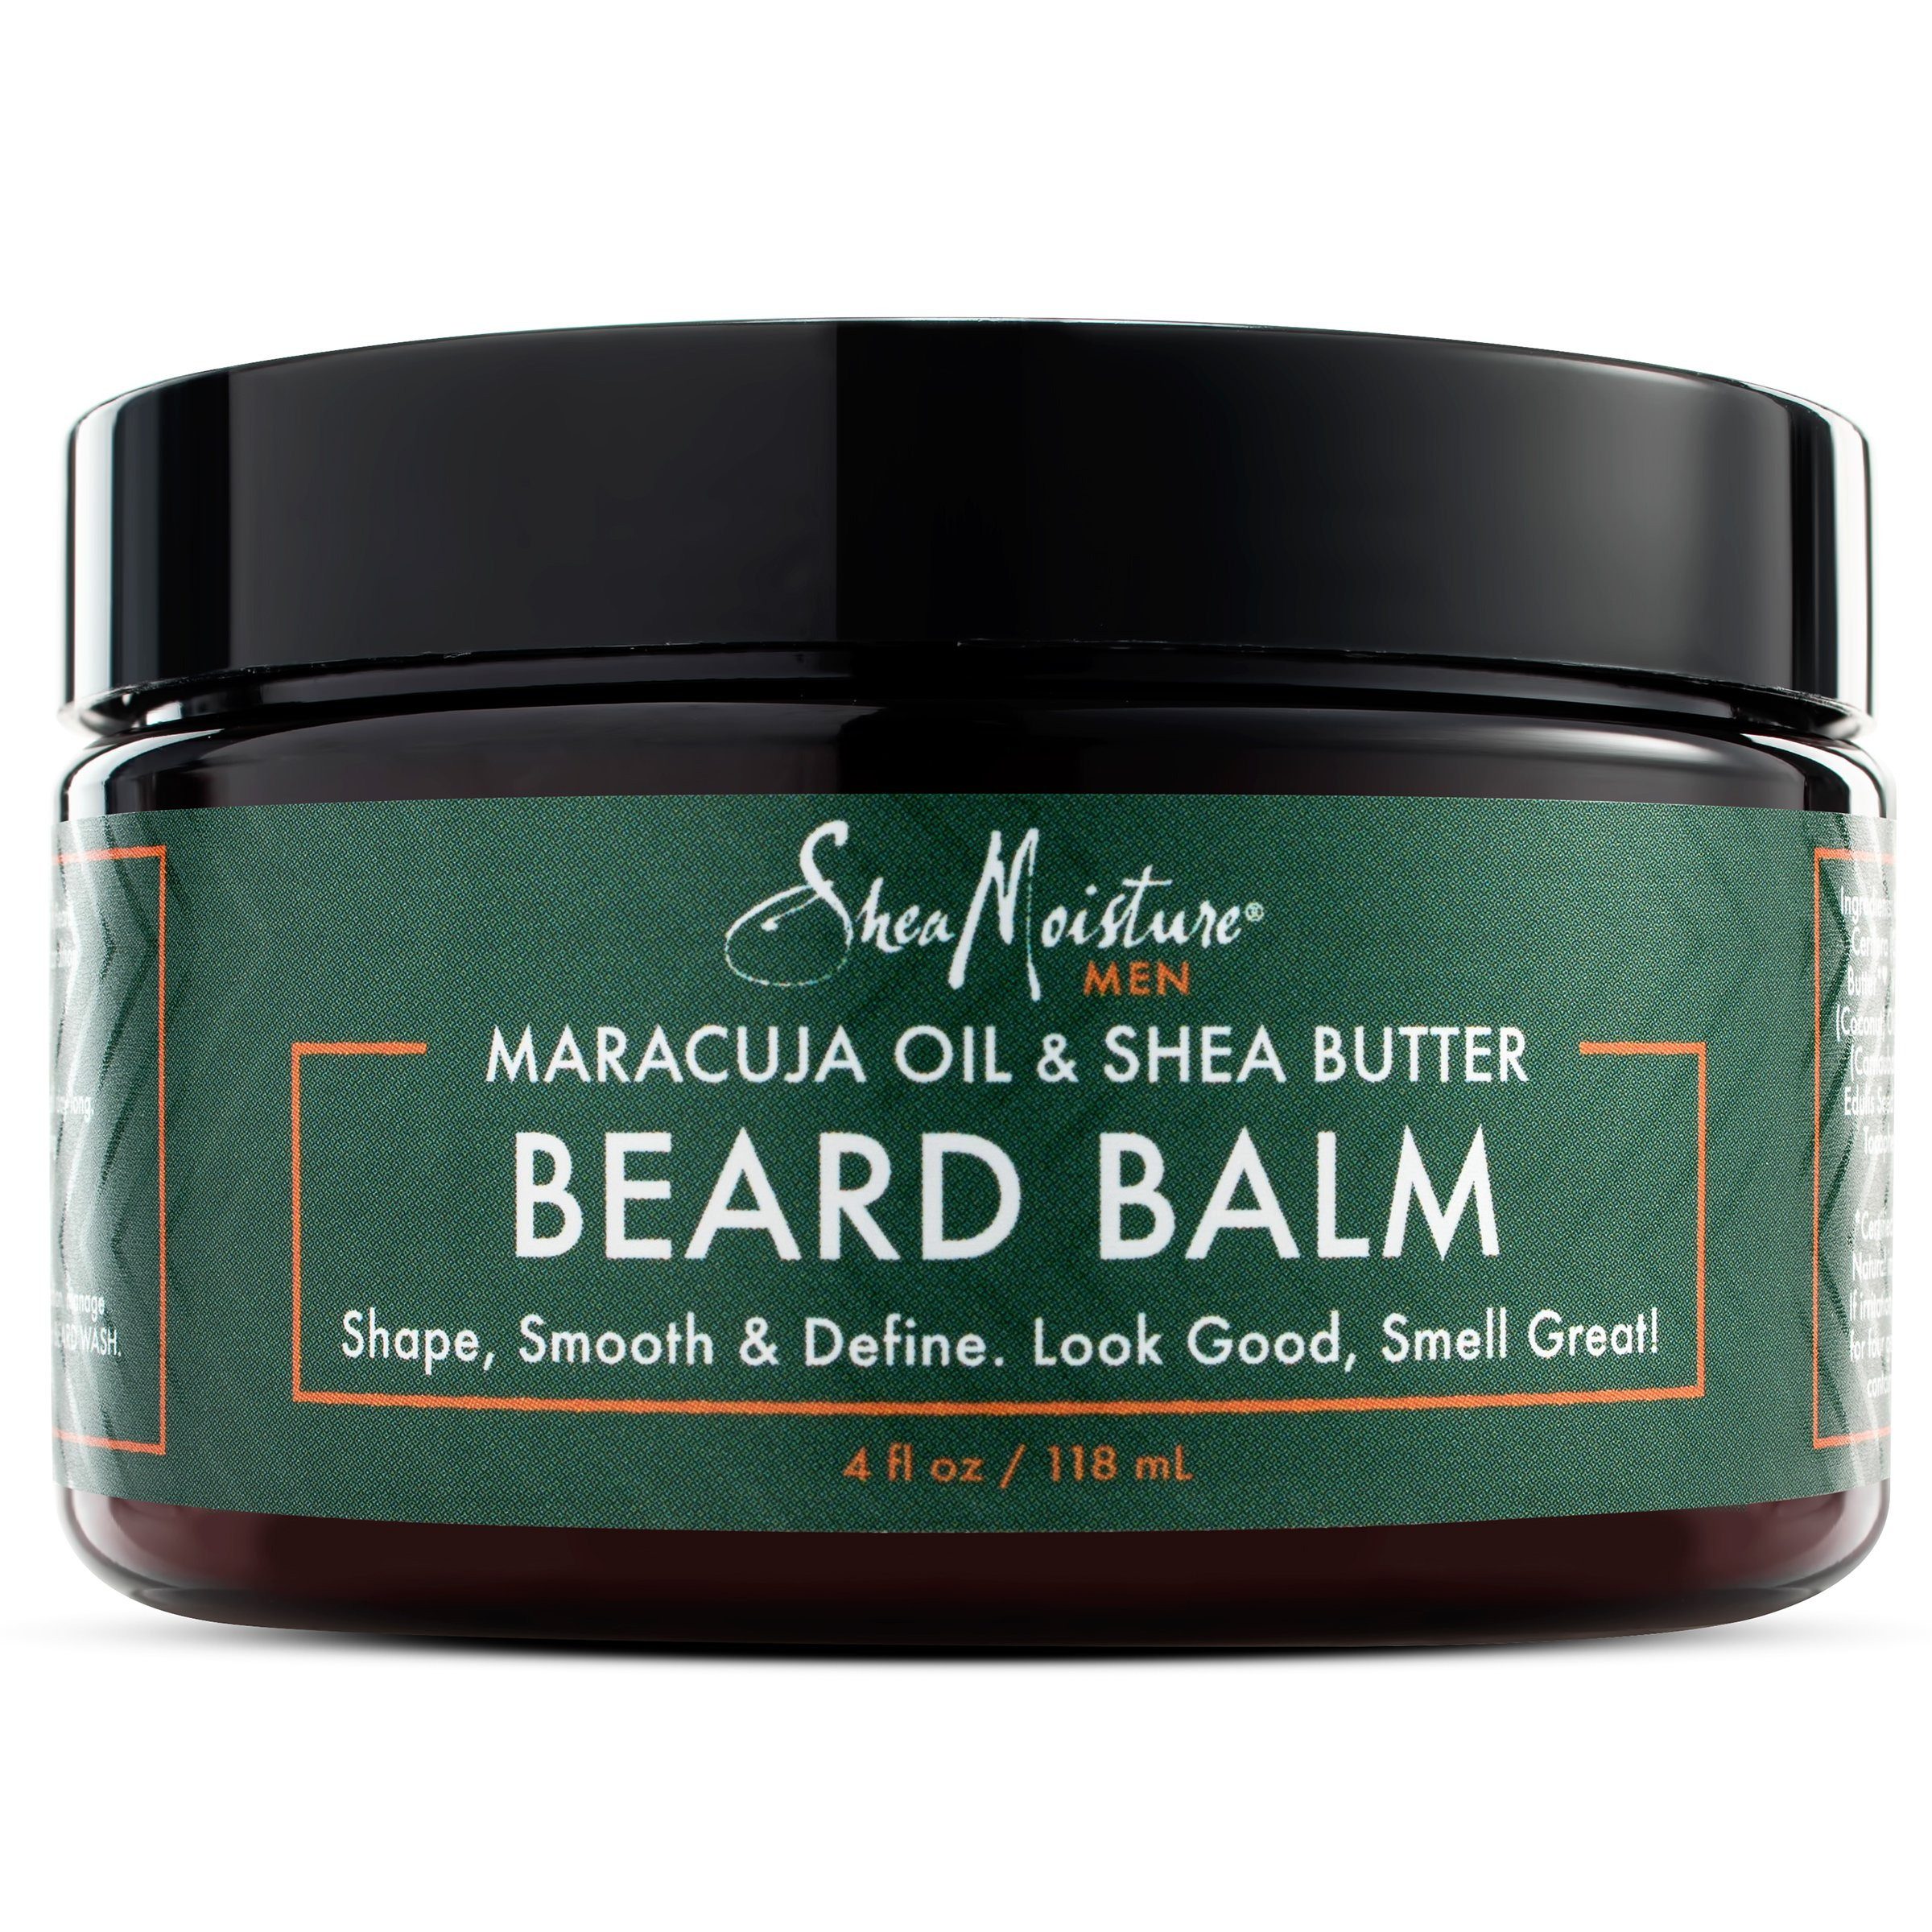 Maracuja Oil & Shea Butter Beard Balm